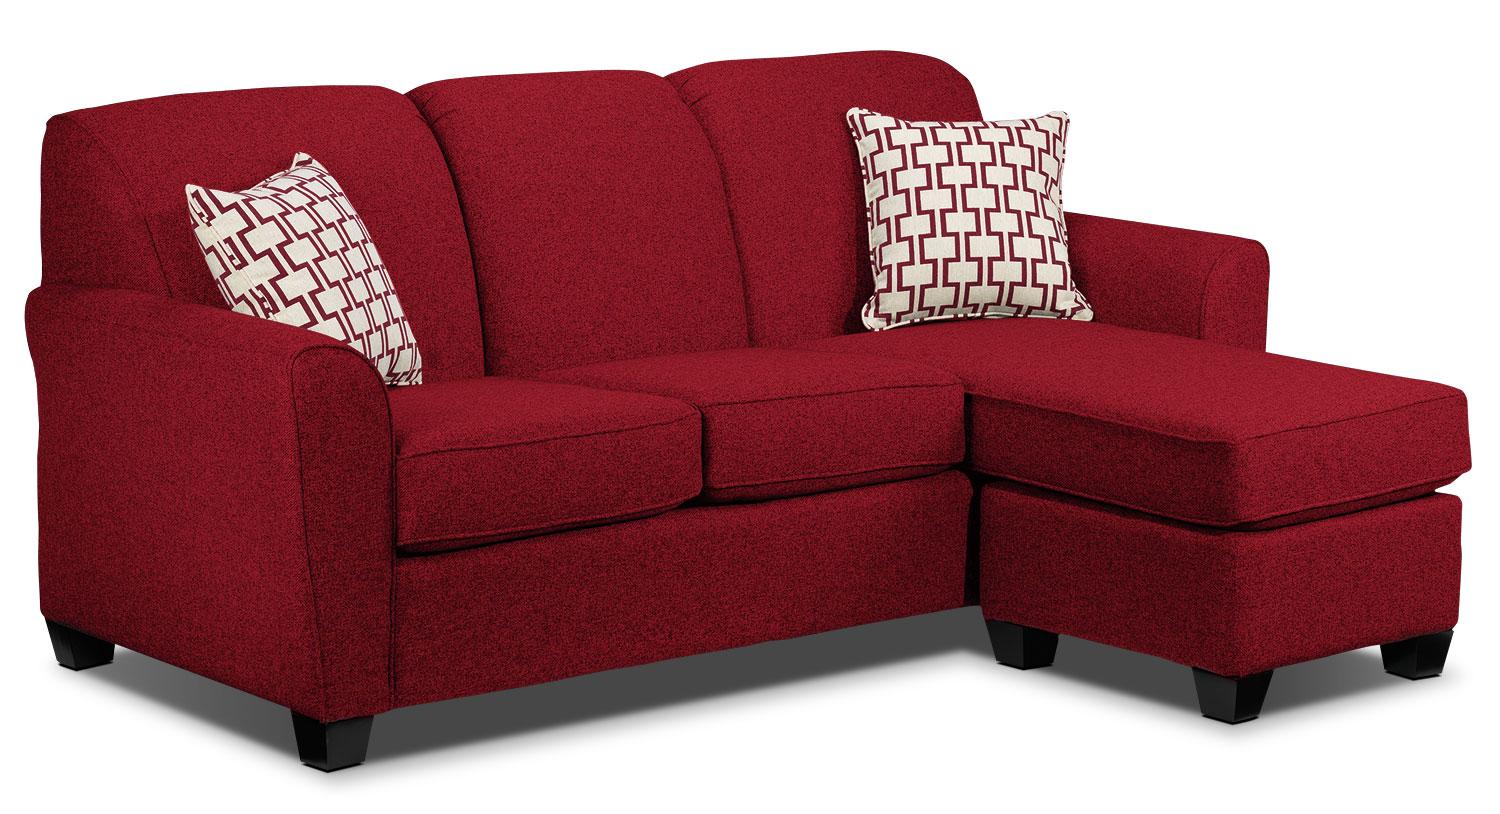 ashby chaise sofa  red  leon's - hover to zoom